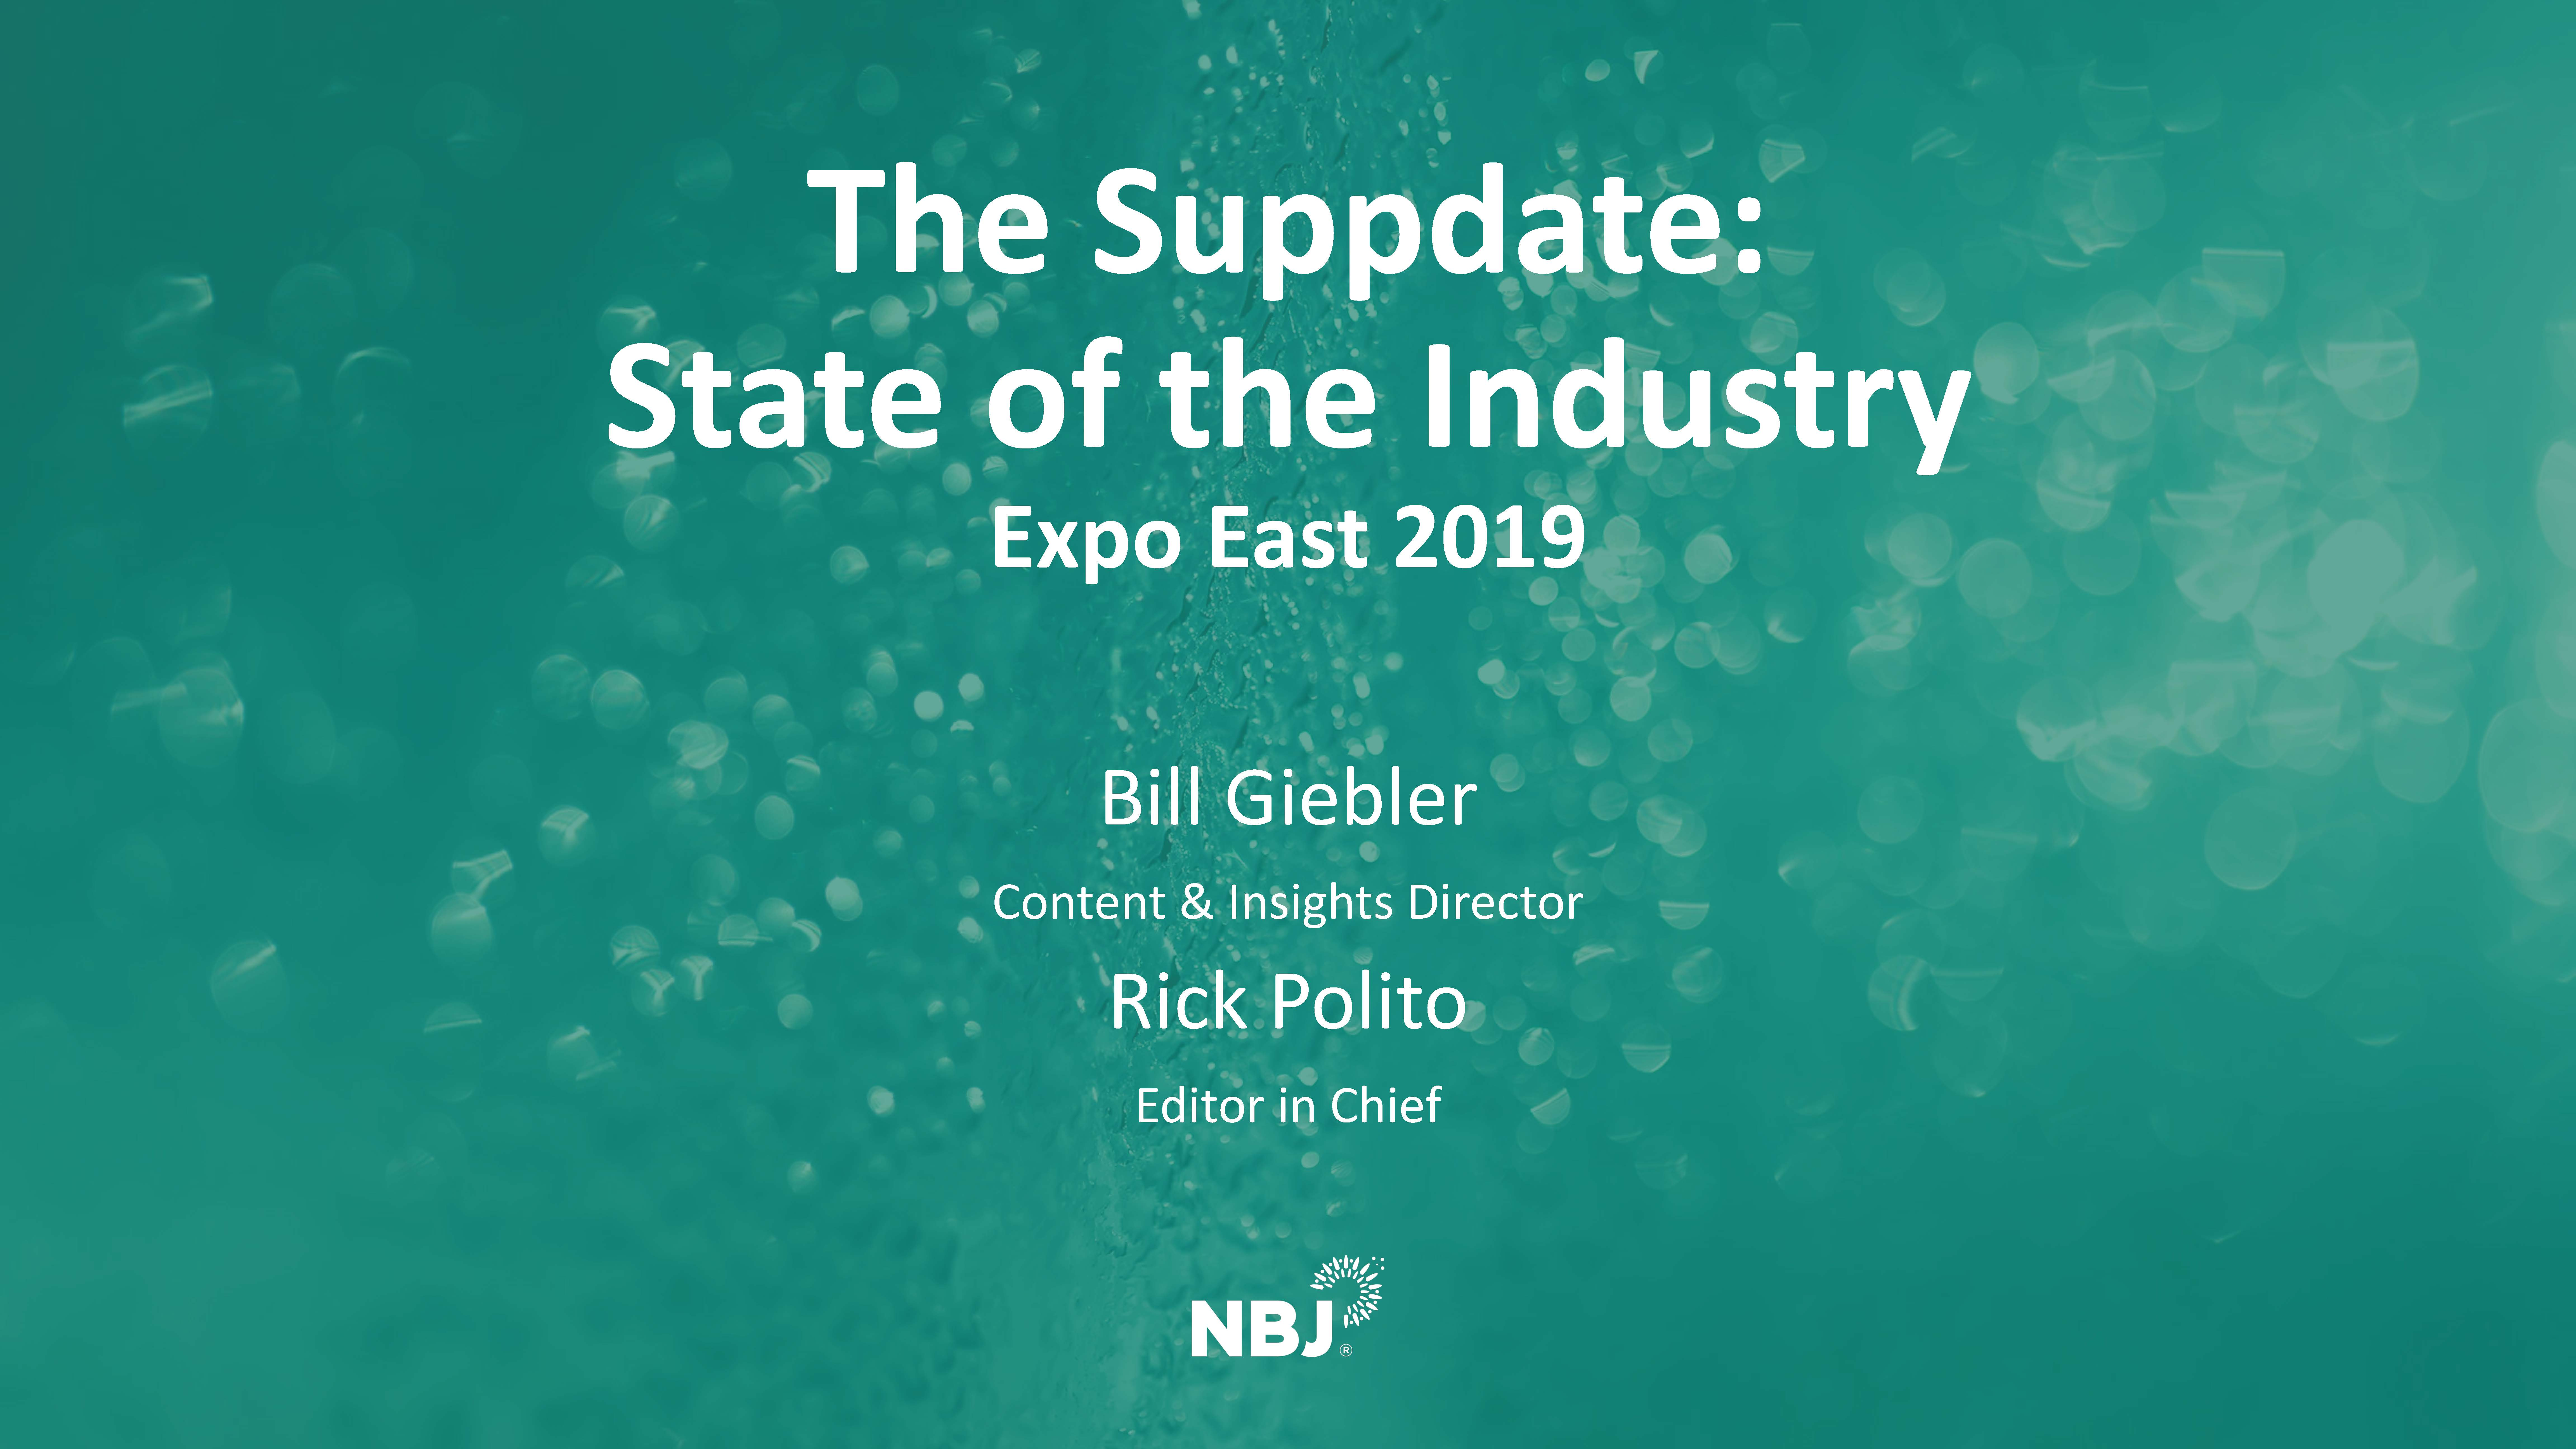 Expo East 2019 Suppdate State of the Industry Slides